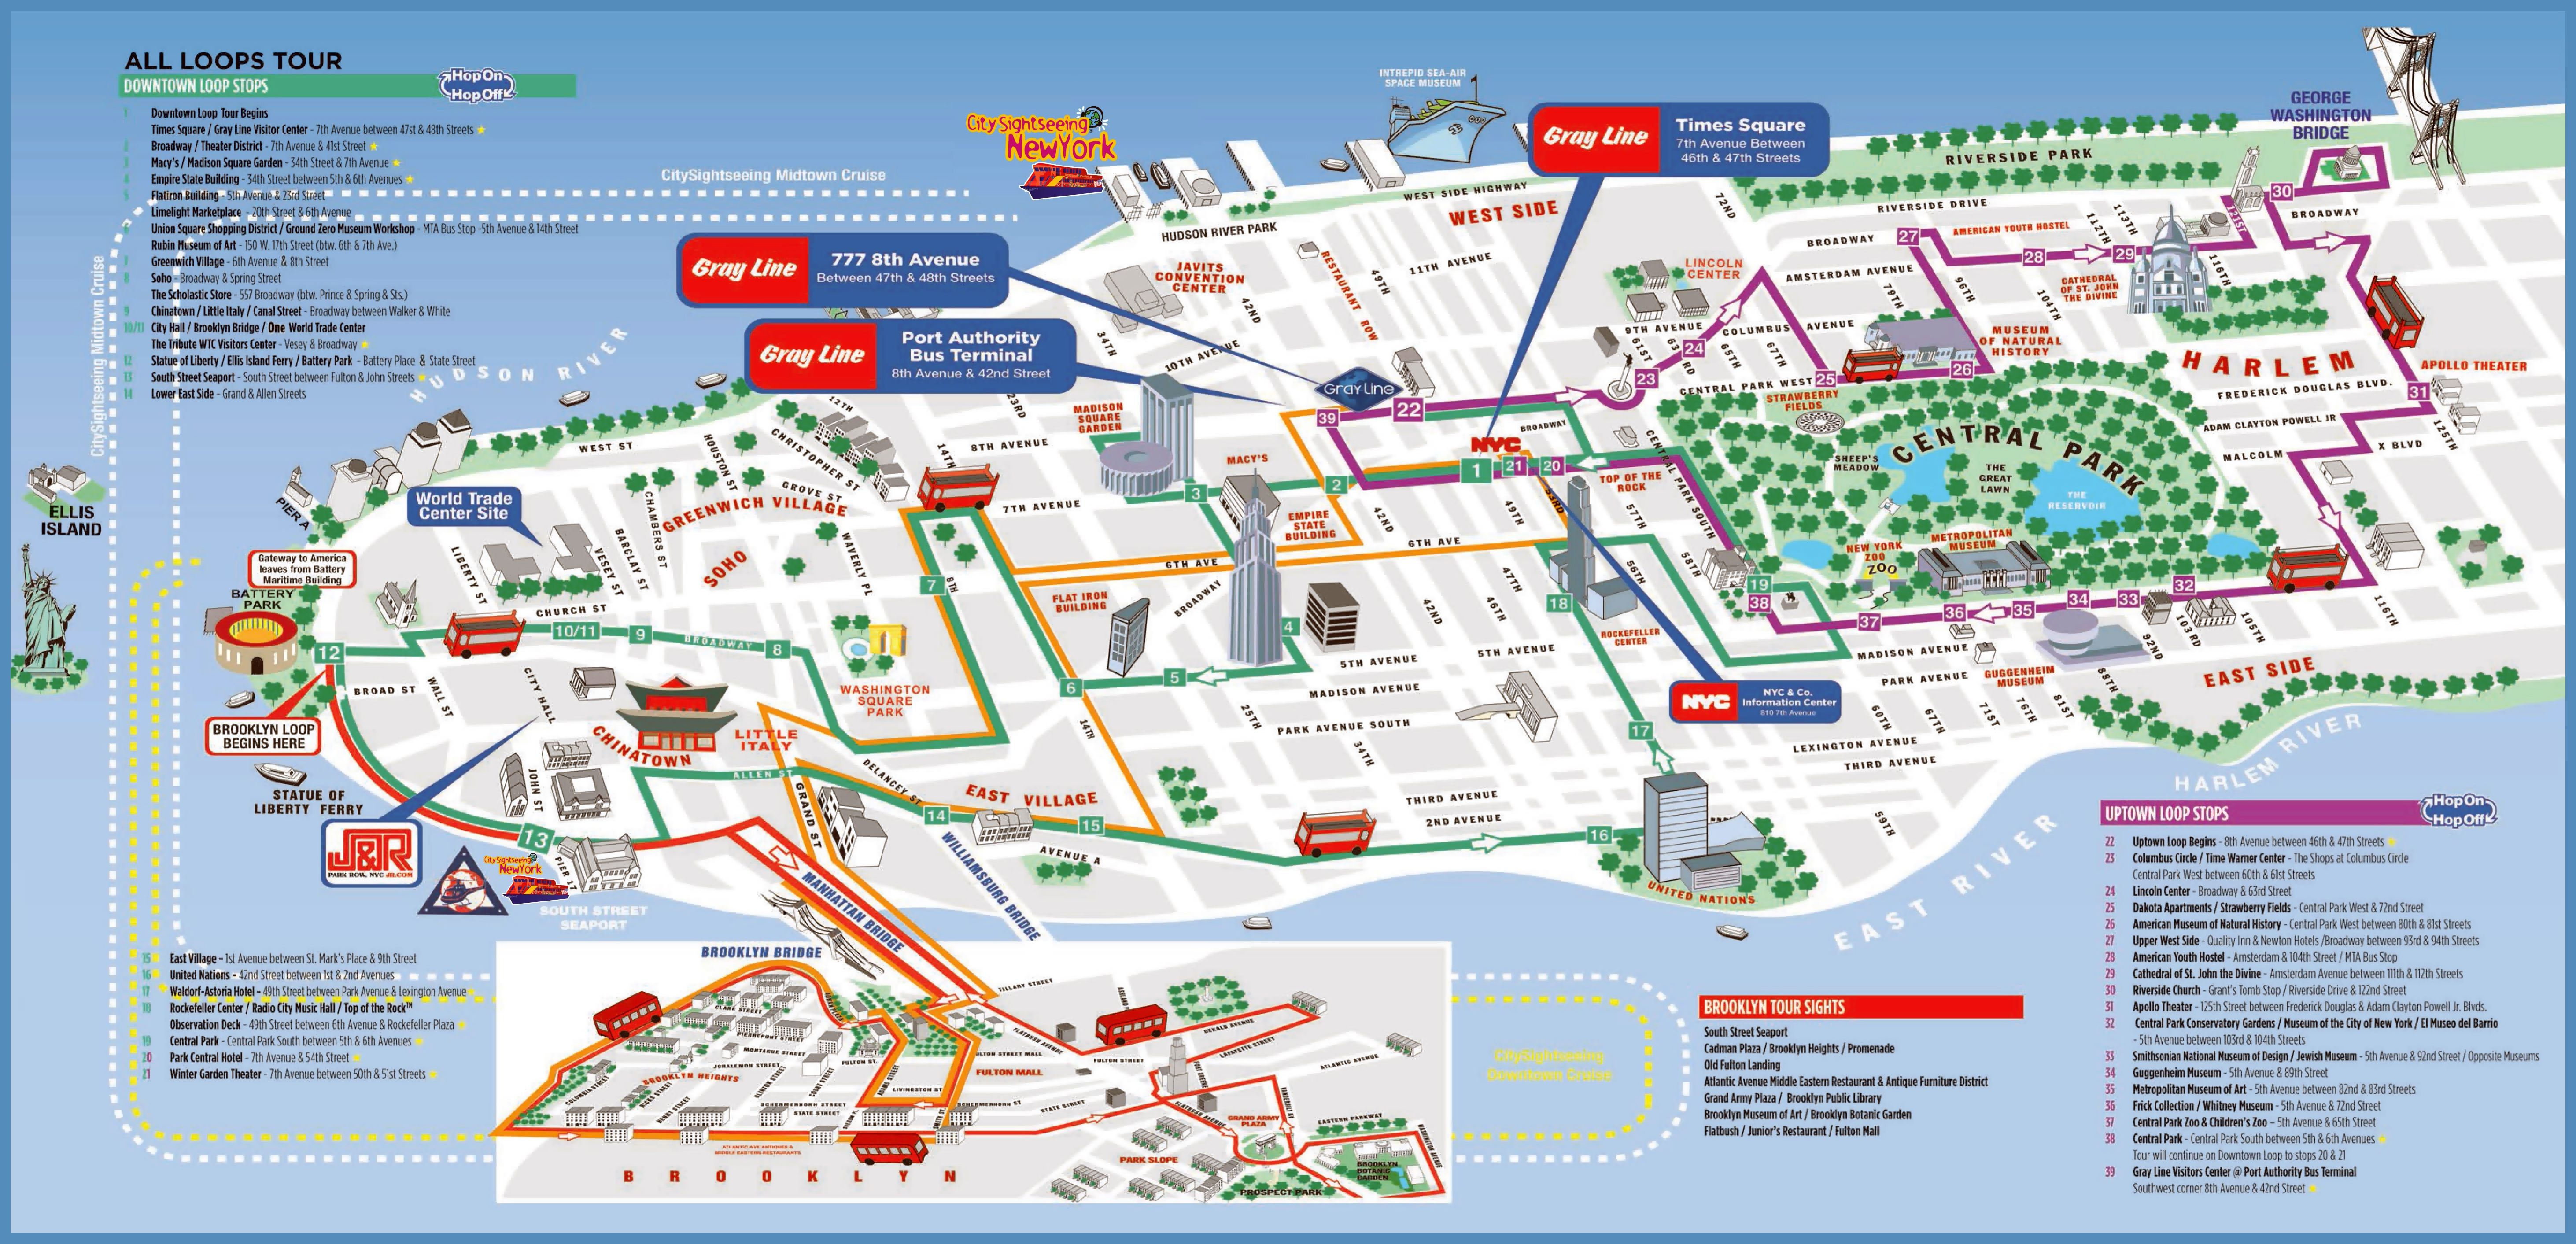 Pinjen Fought On Rv Life/camping In 2019 | Pinterest | New York - Map Of New York Attractions Printable